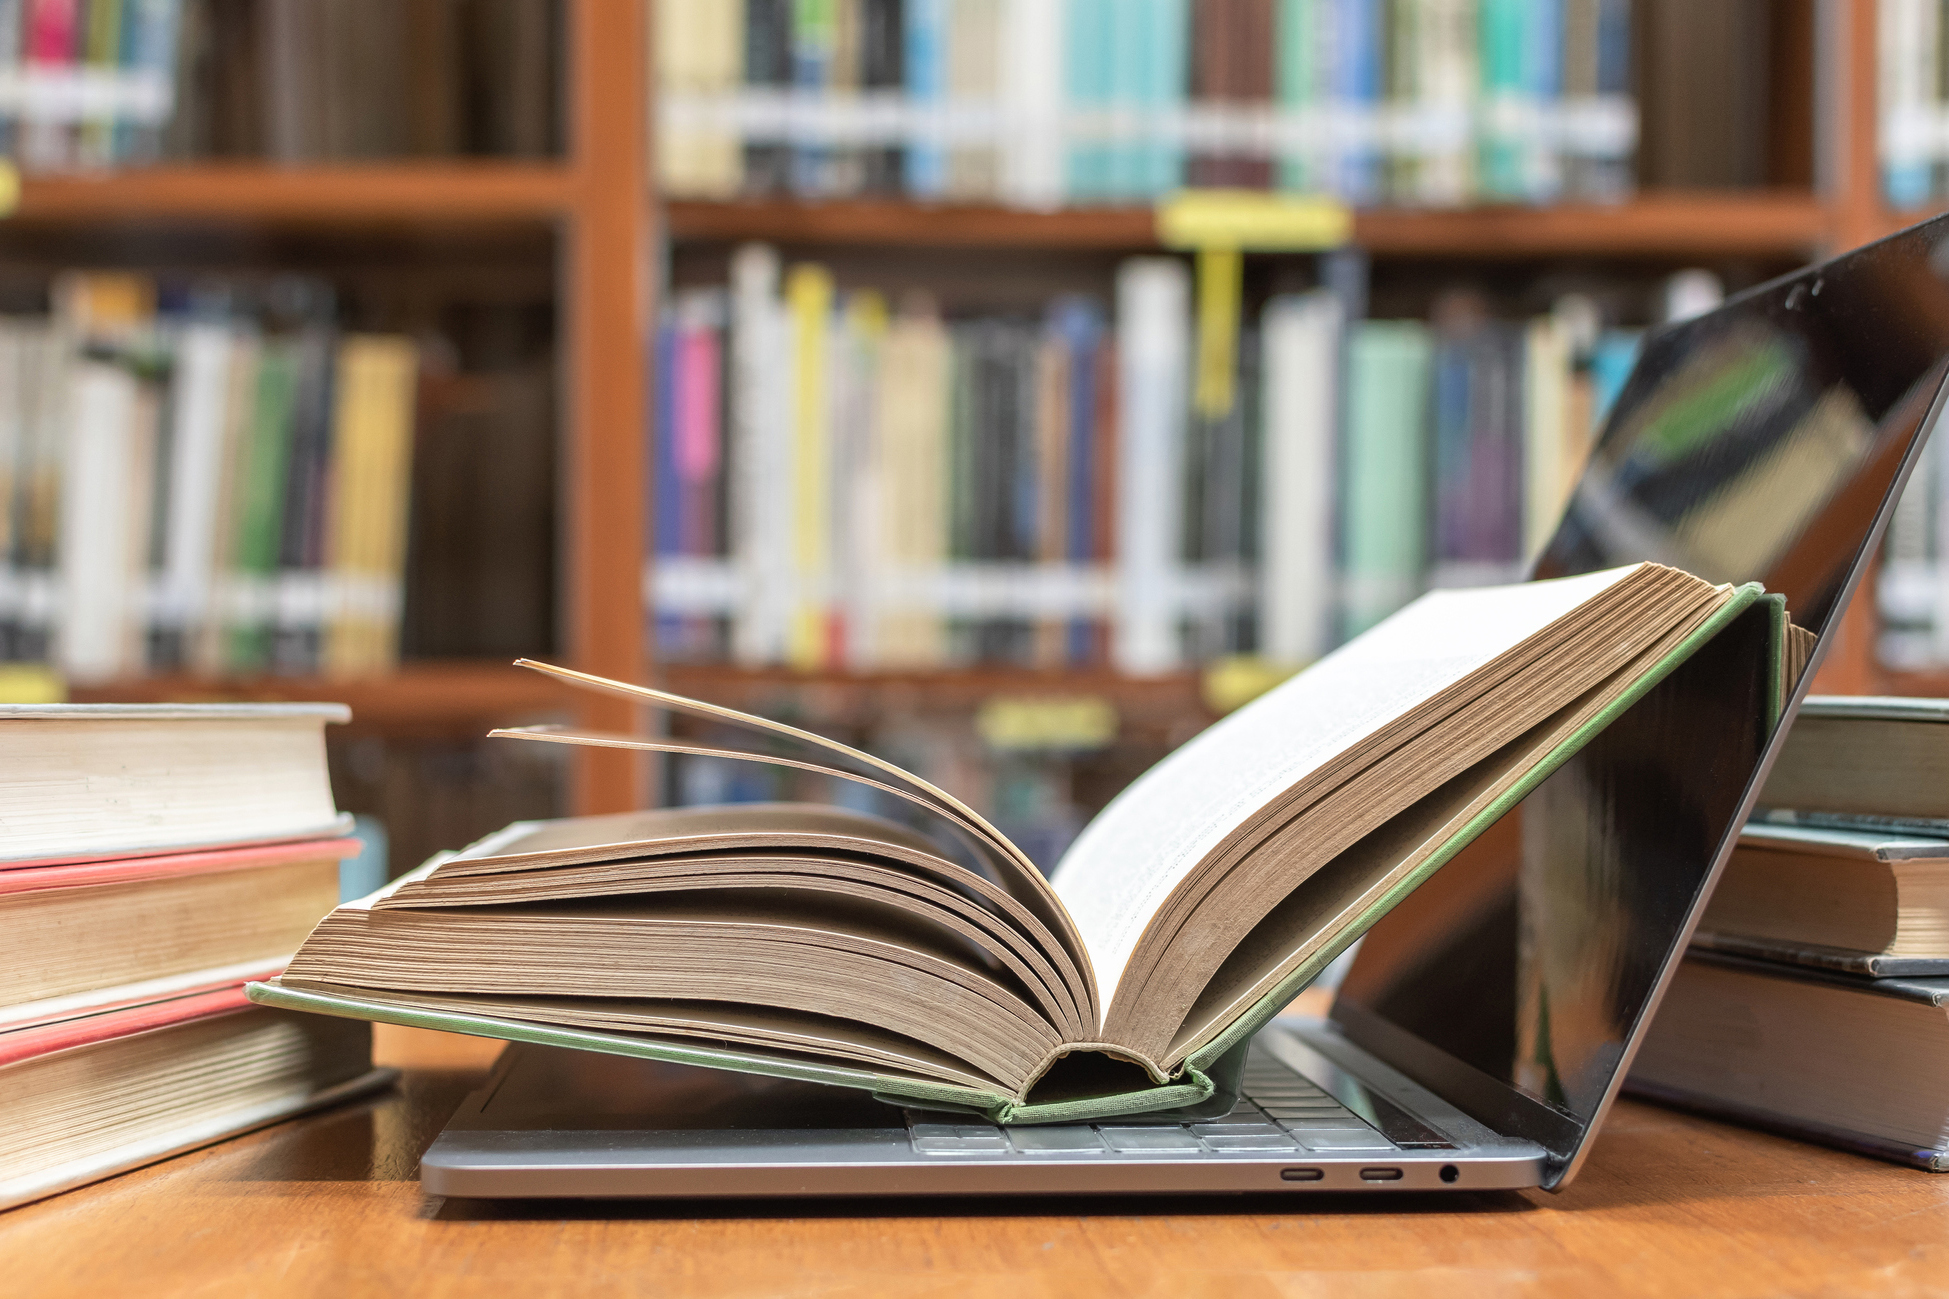 E-learning class and e-book digital technology in education concept with pc computer notebook open in blur school library or classroom background among old stacks of book, textbook archive collection